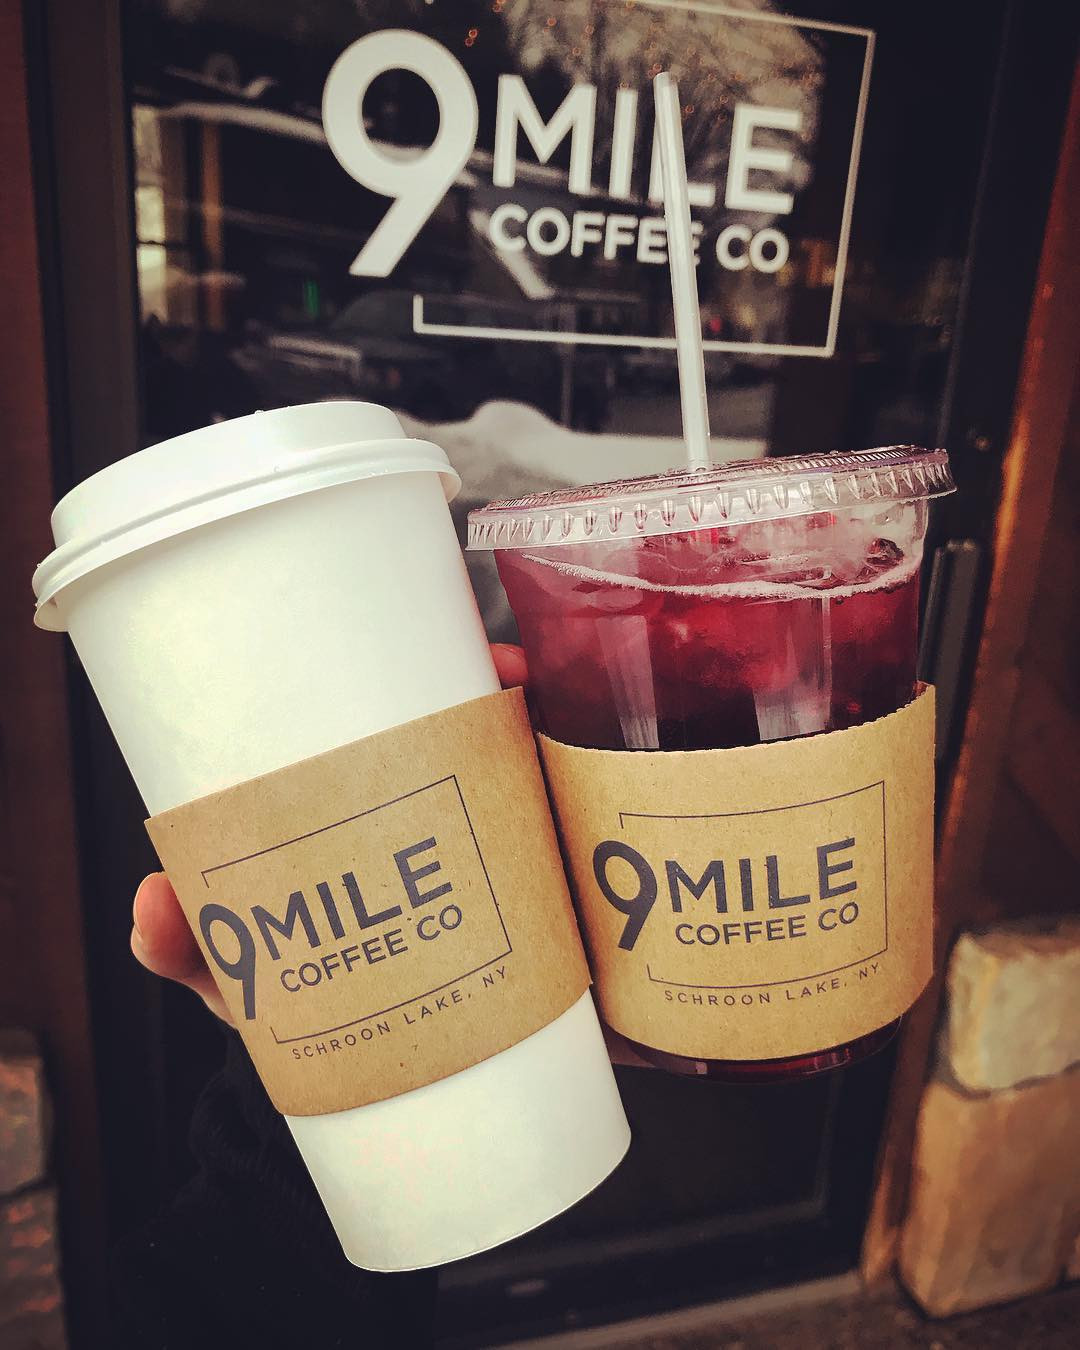 Some of the delicious drinks served up at 9 Mile Coffee Co.